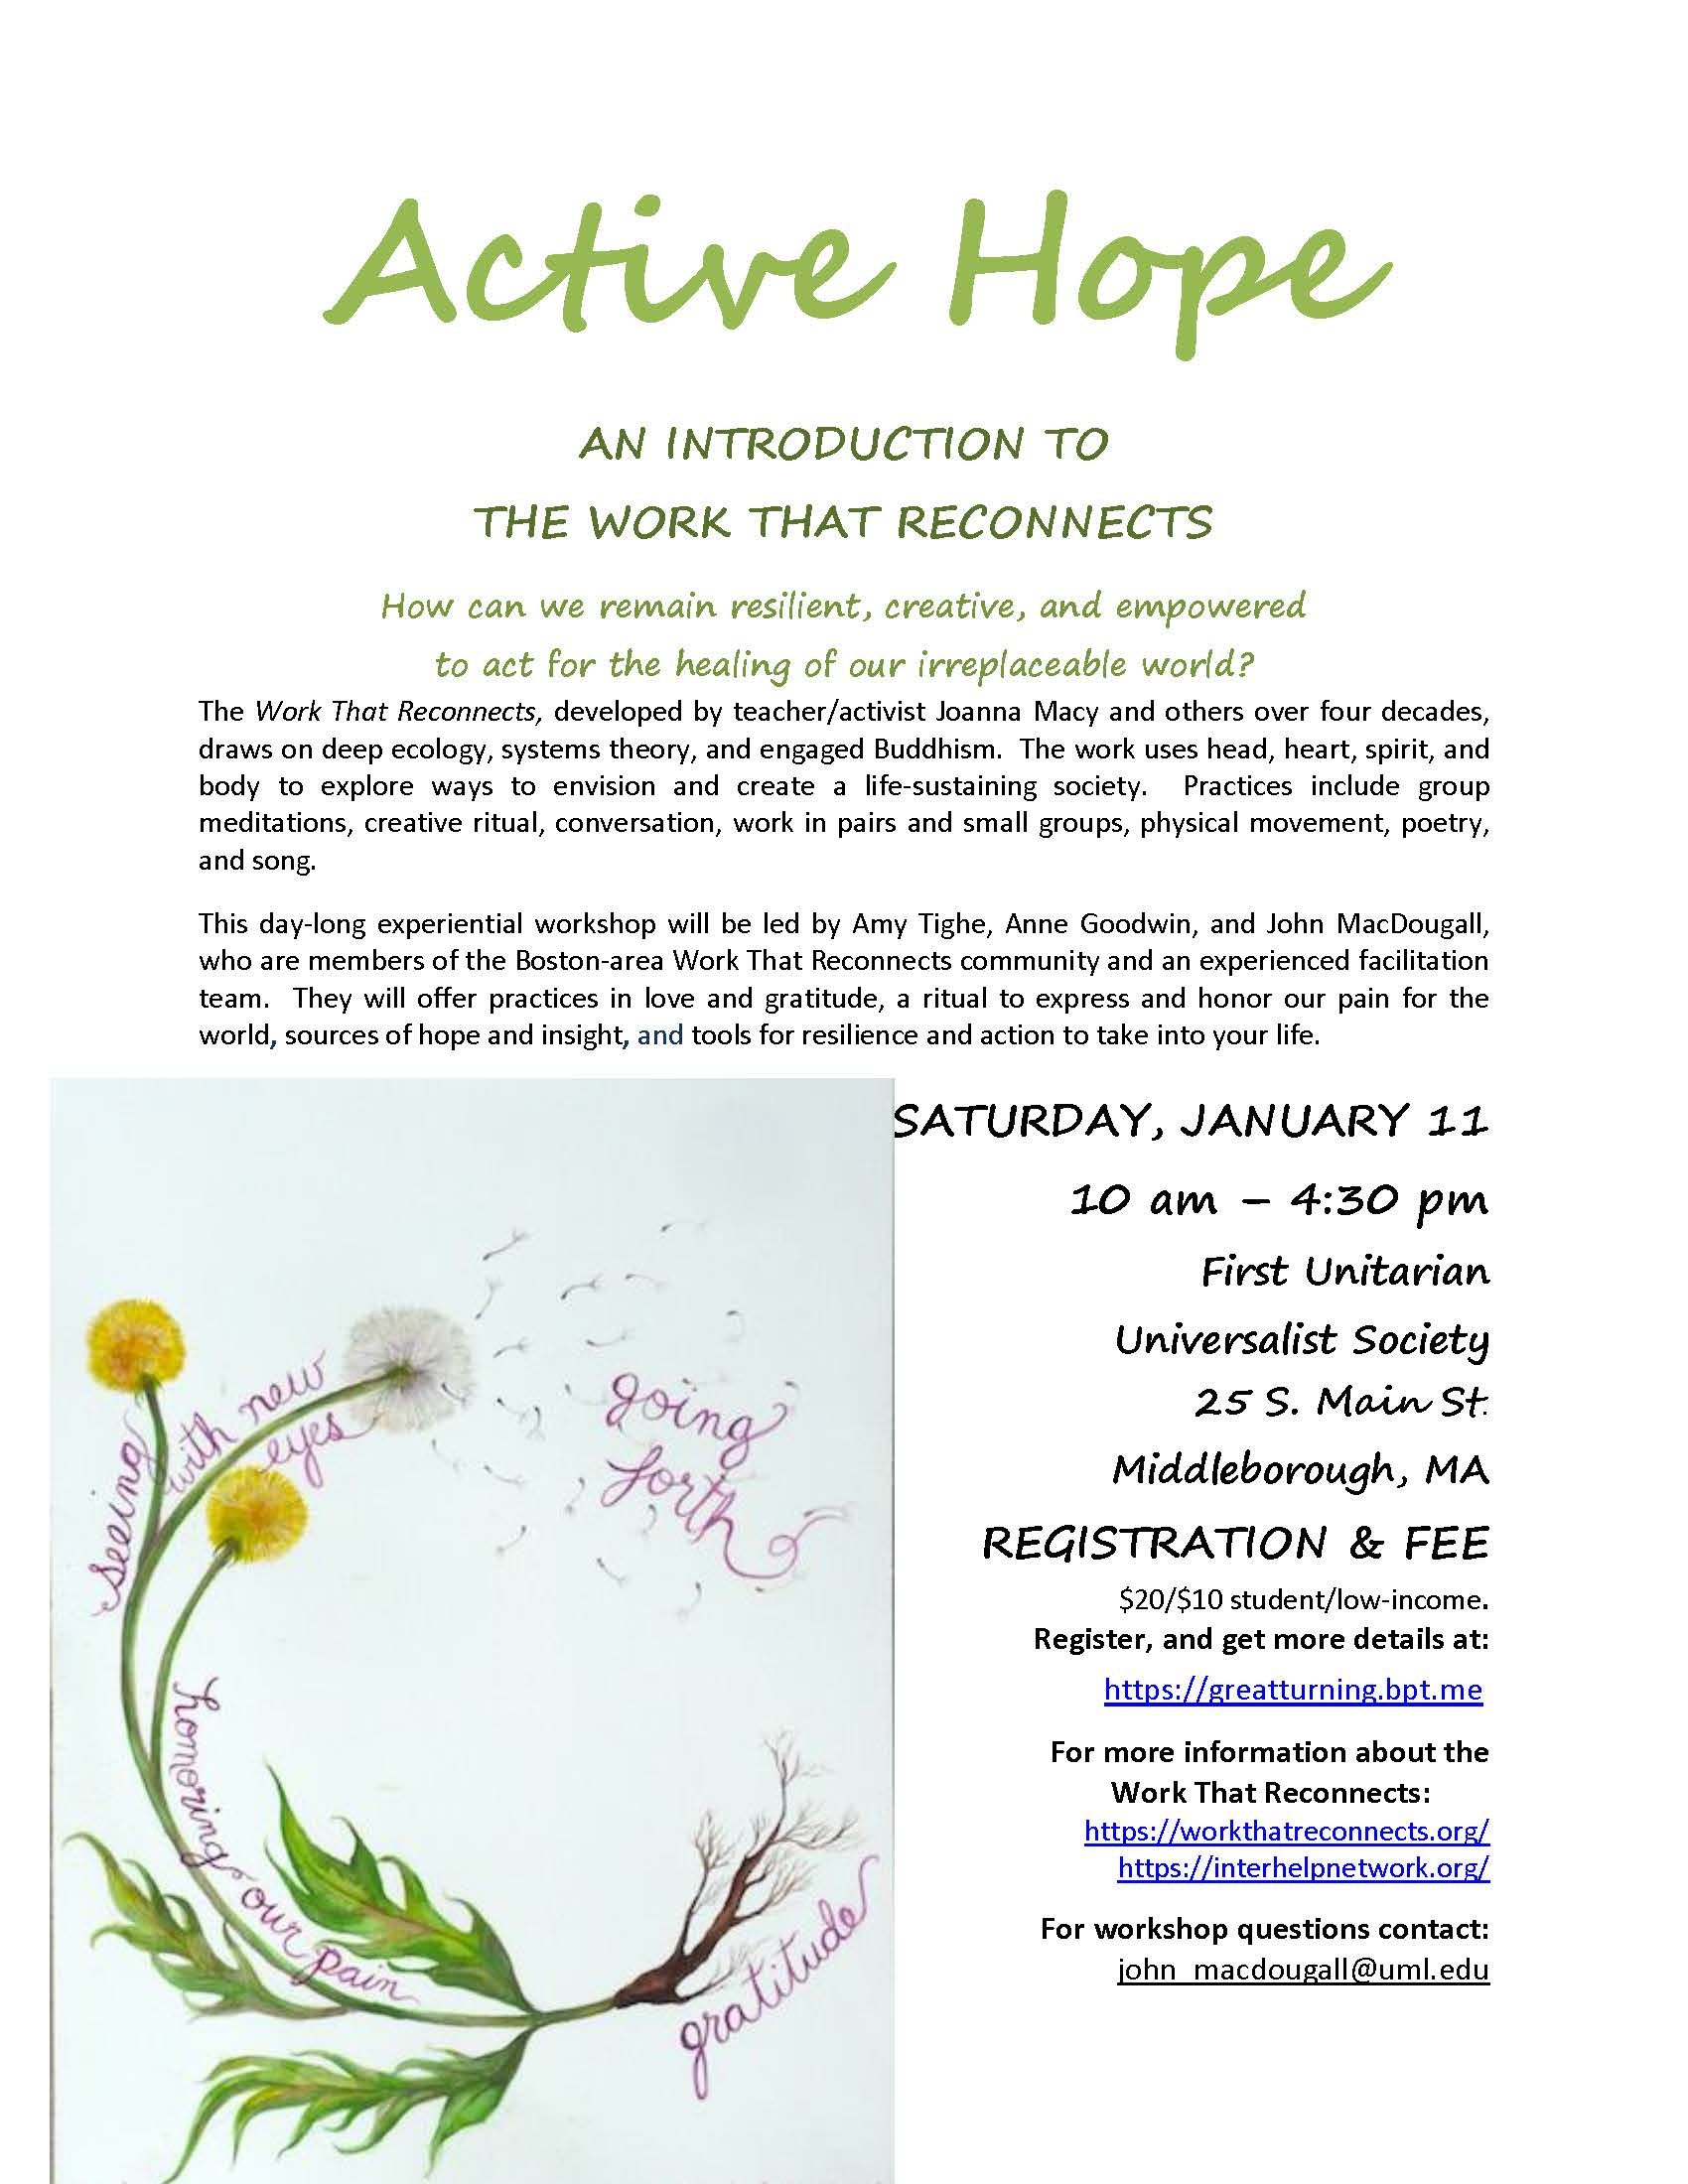 Active Hope AN INTRODUCTION TO  THE WORK THAT RECONNECTS  How can we remain resilient, creative, and empowered to act for the healing of our irreplaceable world? The Work That Reconnects, developed by teacher/activist Joanna Macy and others over four decades, draws on deep ecology, systems theory, and engaged Buddhism.  The work uses head, heart, spirit, and body to explore ways to envision and create a life-sustaining society.  Practices include group meditations, creative ritual, conversation, work in pairs and small groups, physical movement, poetry, and song.   	 This day-long experiential workshop will be led by Amy Tighe, Anne Goodwin, and John MacDougall, who are members of the Boston-area Work That Reconnects community and an experienced facilitation team.  They will offer practices in love and gratitude, a ritual to express and honor our pain for the world, sources of hope and insight, and tools for resilience and action to take into your life.  SATURDAY, JANUARY 11 10 am – 4:30 pm First Unitarian  Universalist Society 25 S. Main St. Middleborough, MA REGISTRATION & FEE $20/$10 student/low-income.  Register, and get more details at:          https://greatturning.bpt.me  For more information about the    Work That Reconnects: https://workthatreconnects.org/ https://interhelpnetwork.org/  For workshop questions contact: john_macdougall@uml.edu